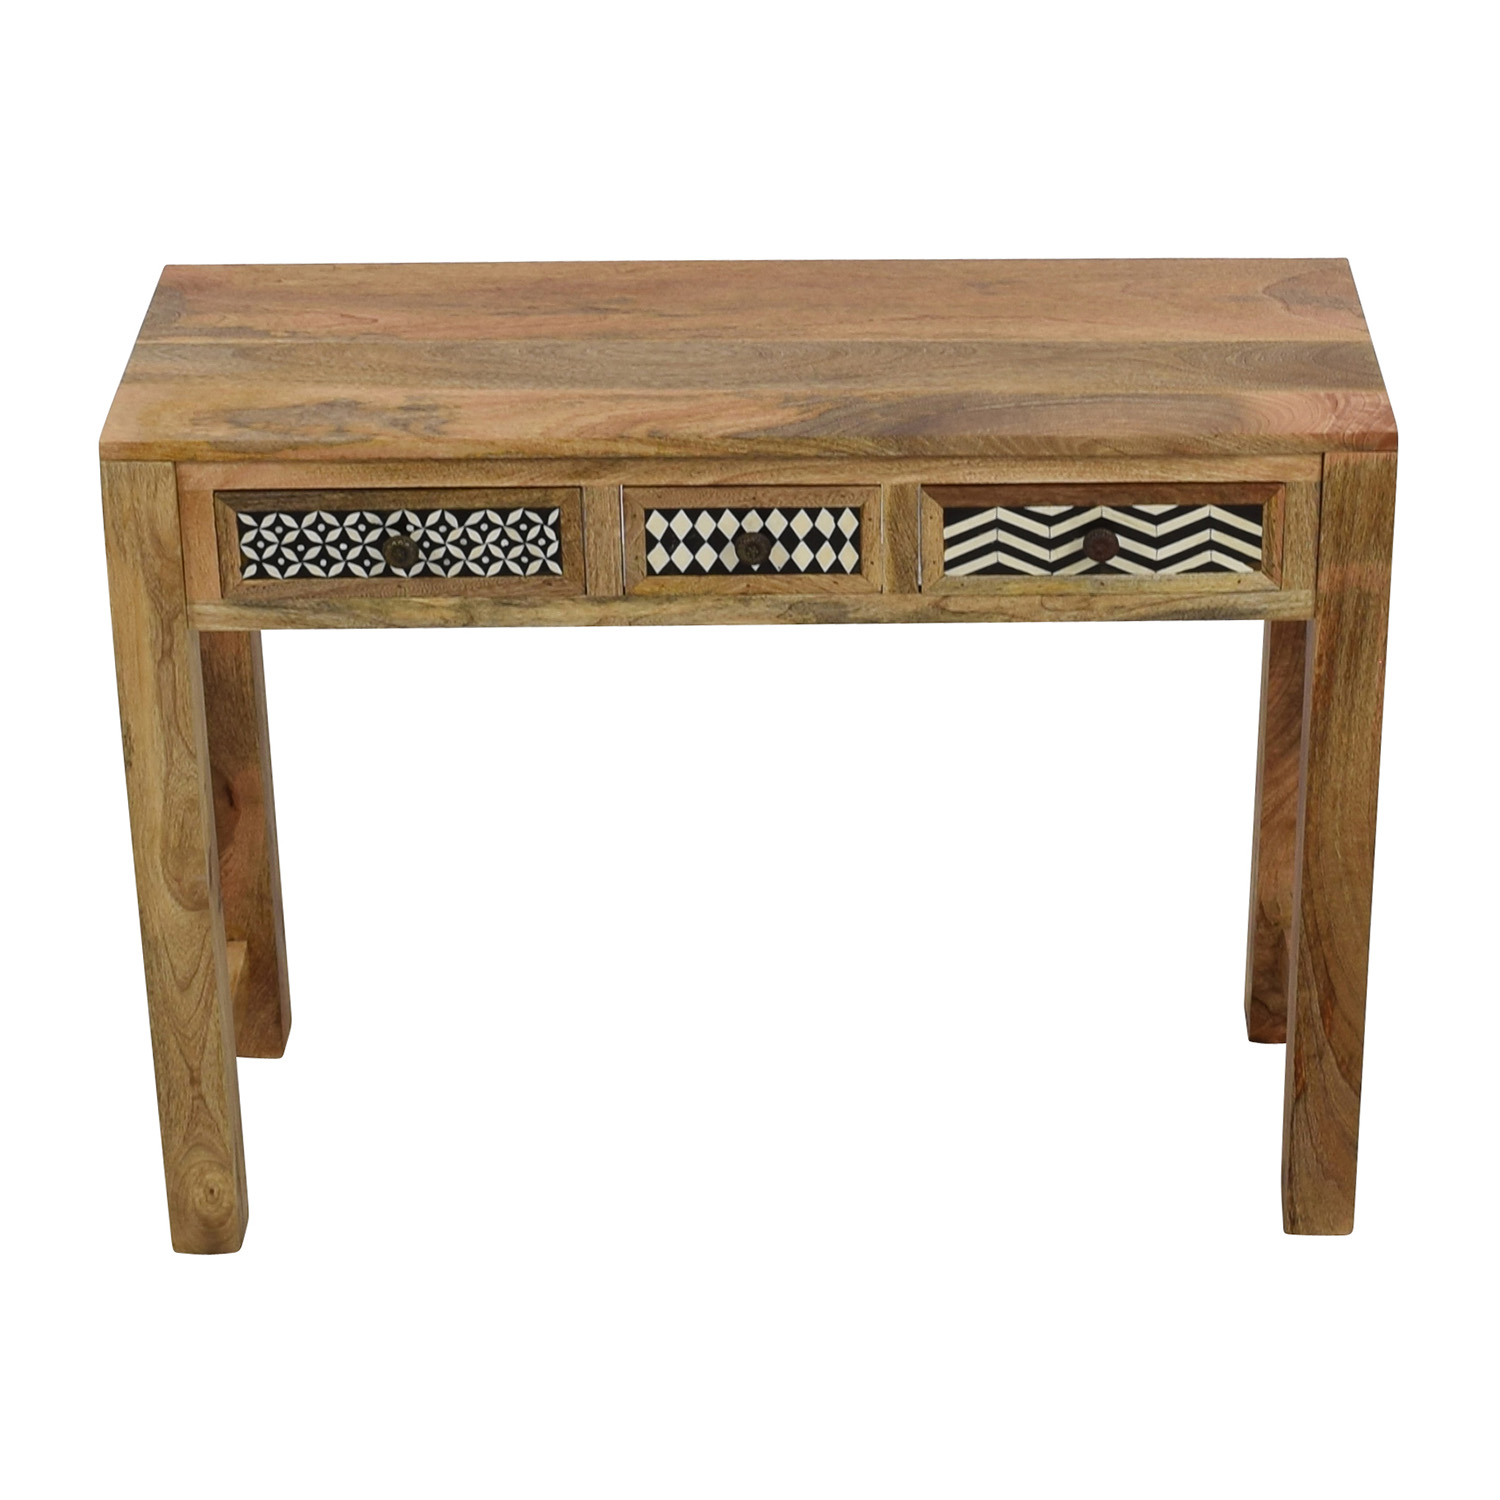 Natural Wood Table with Patterned Drawers used